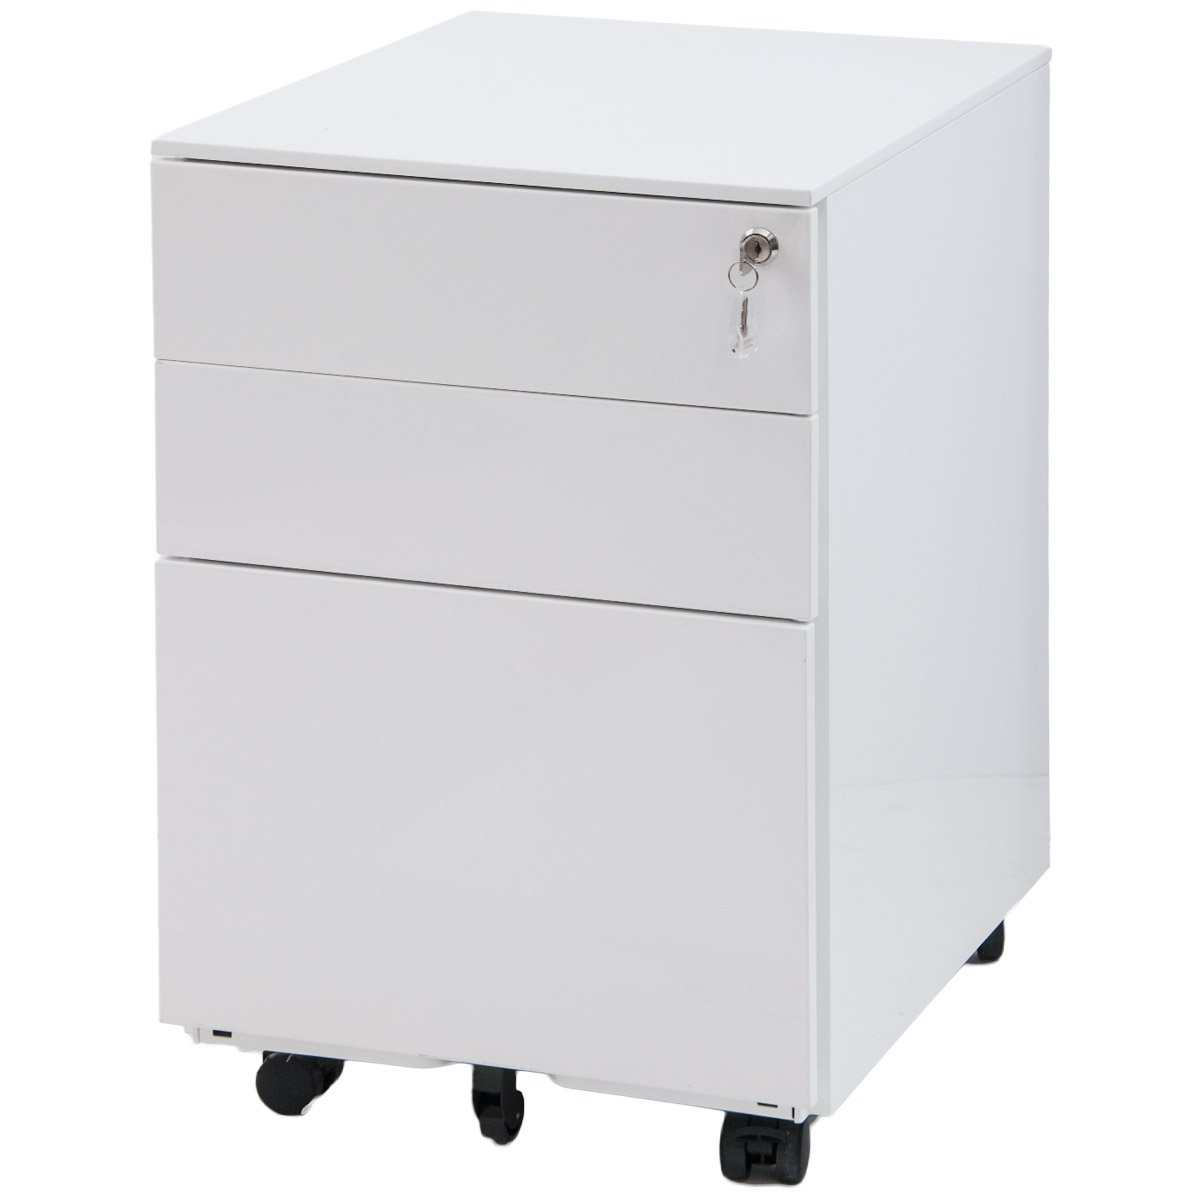 Meritline 3 Drawer Mobile Metal Lockable Lateral File Cabinet, Under Desk File Cabinet Fully Assembled Except for 5 Castors (White) by Meritline